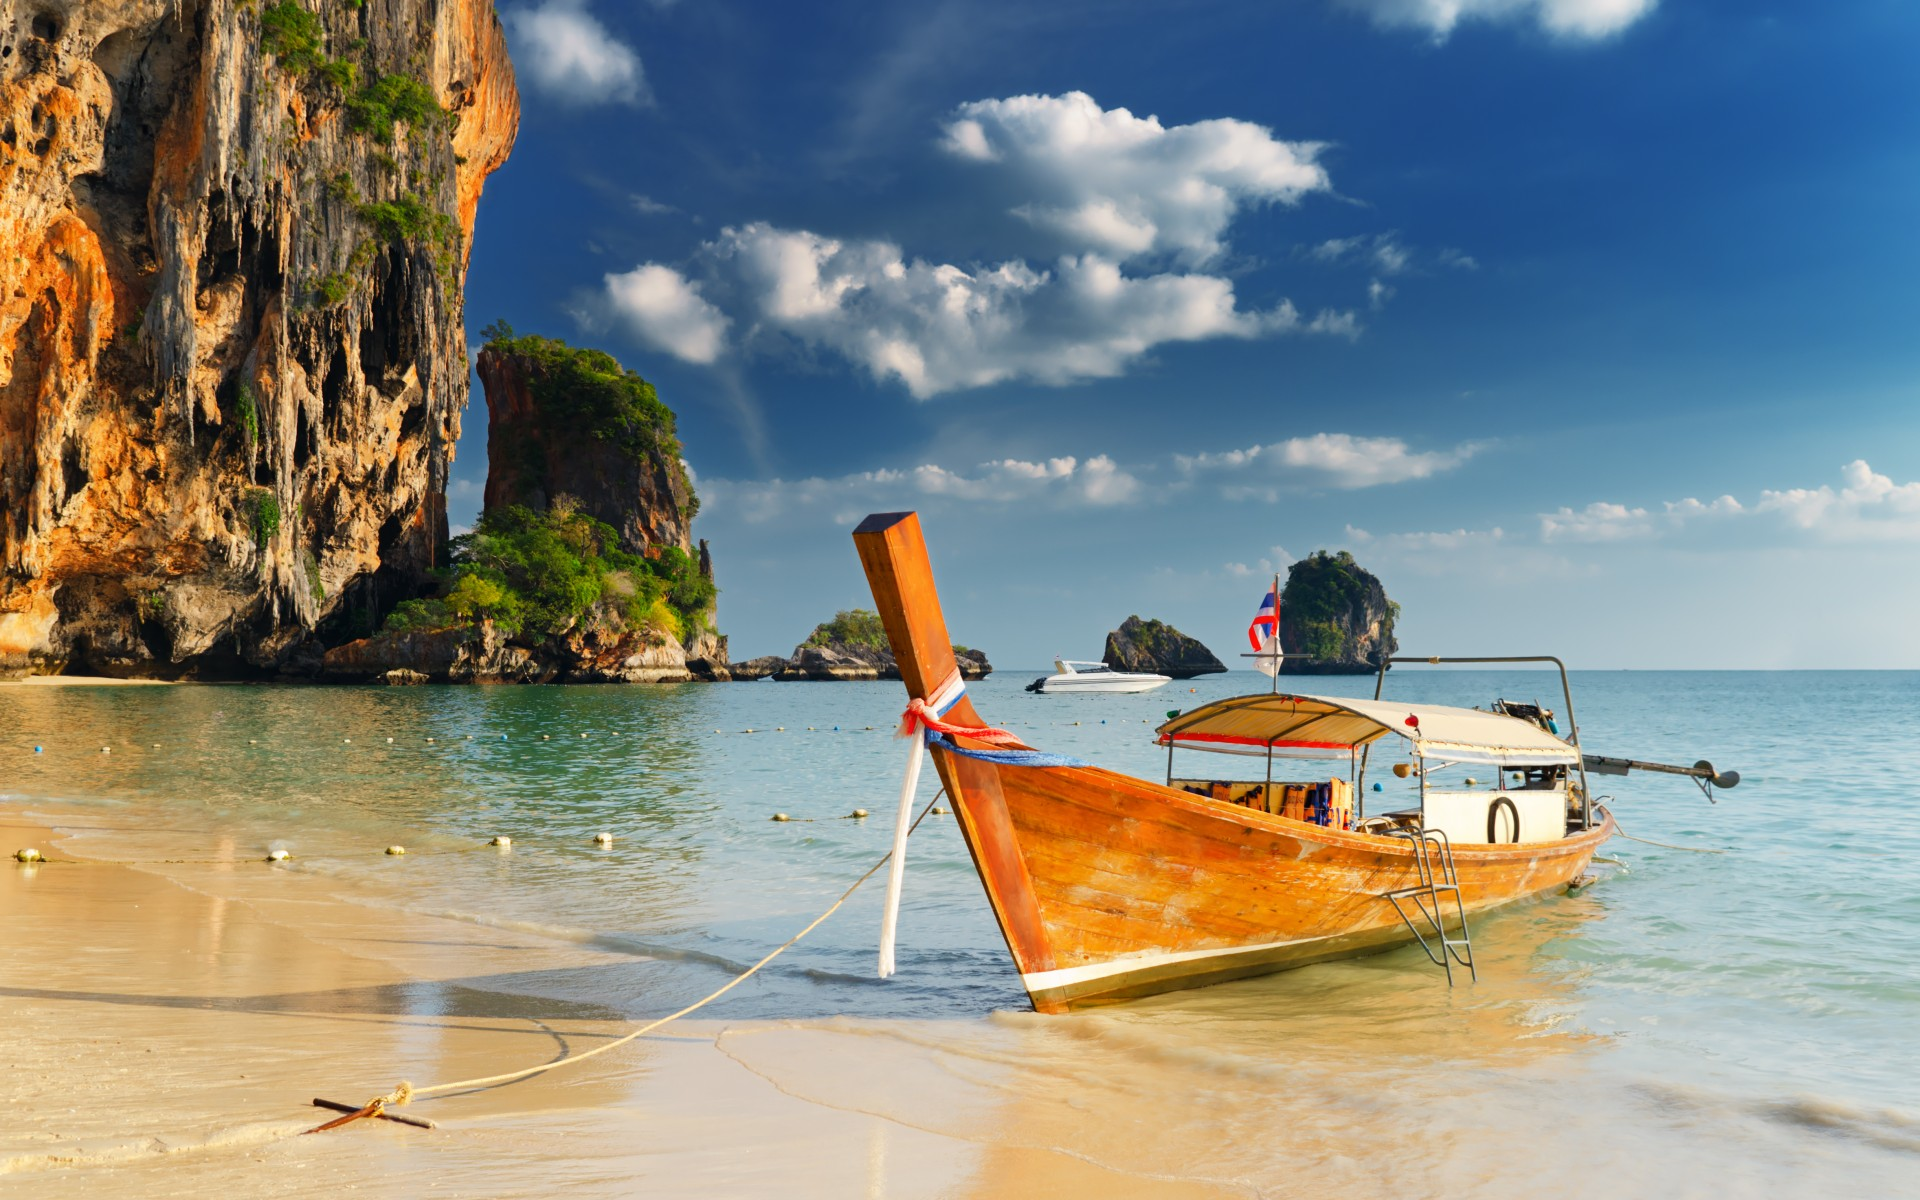 Sea beach boat rocks clouds sand ocean cliff sky clouds shore